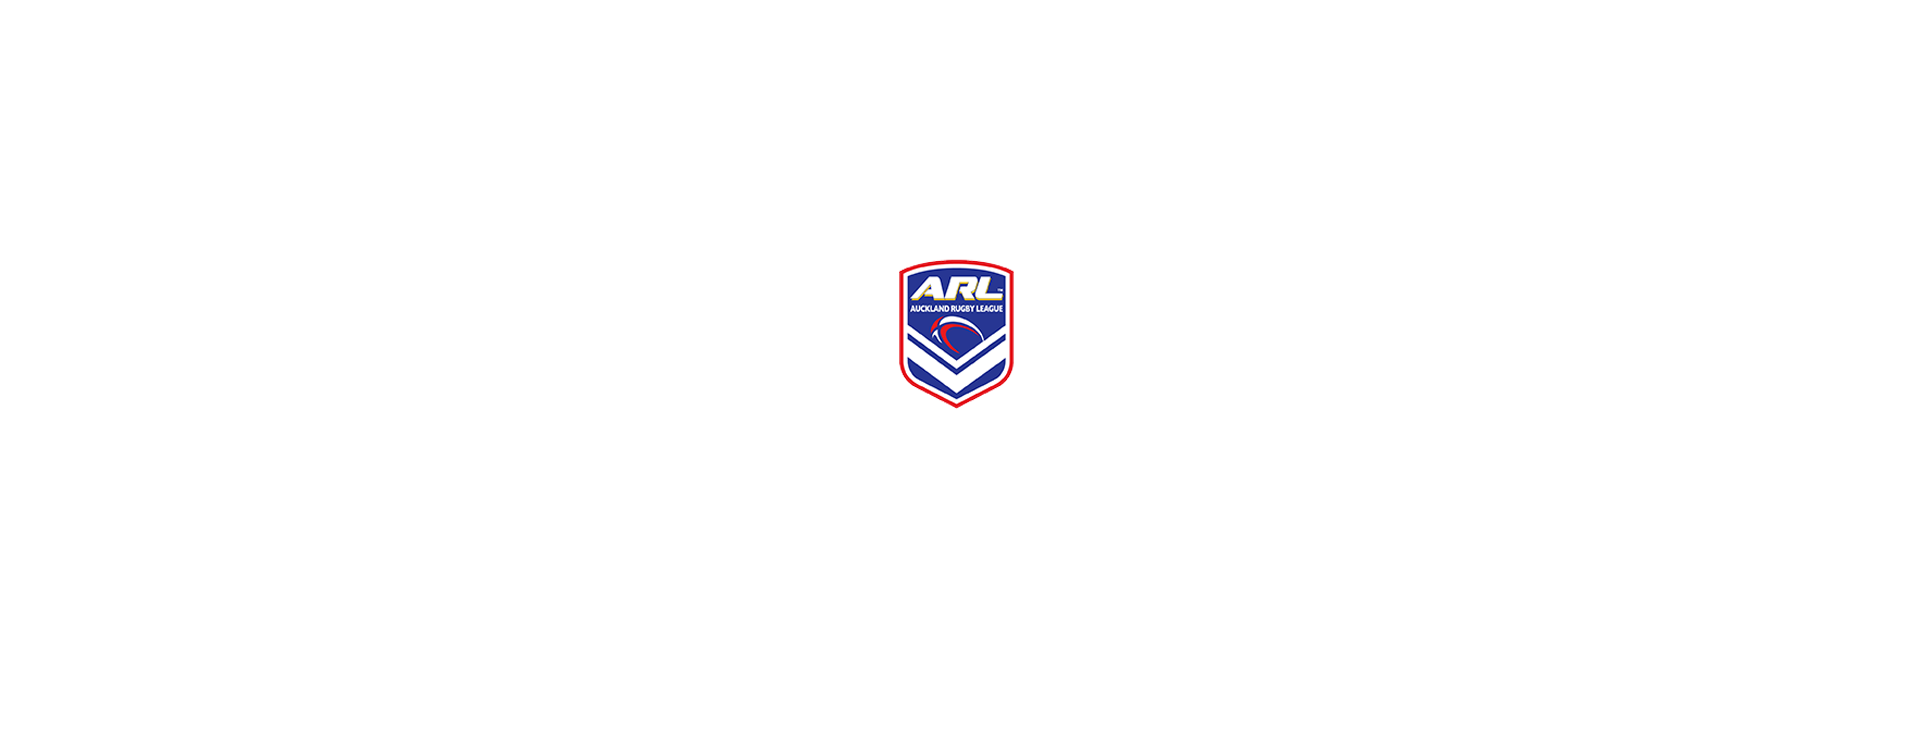 Auckland Rugby League - Home